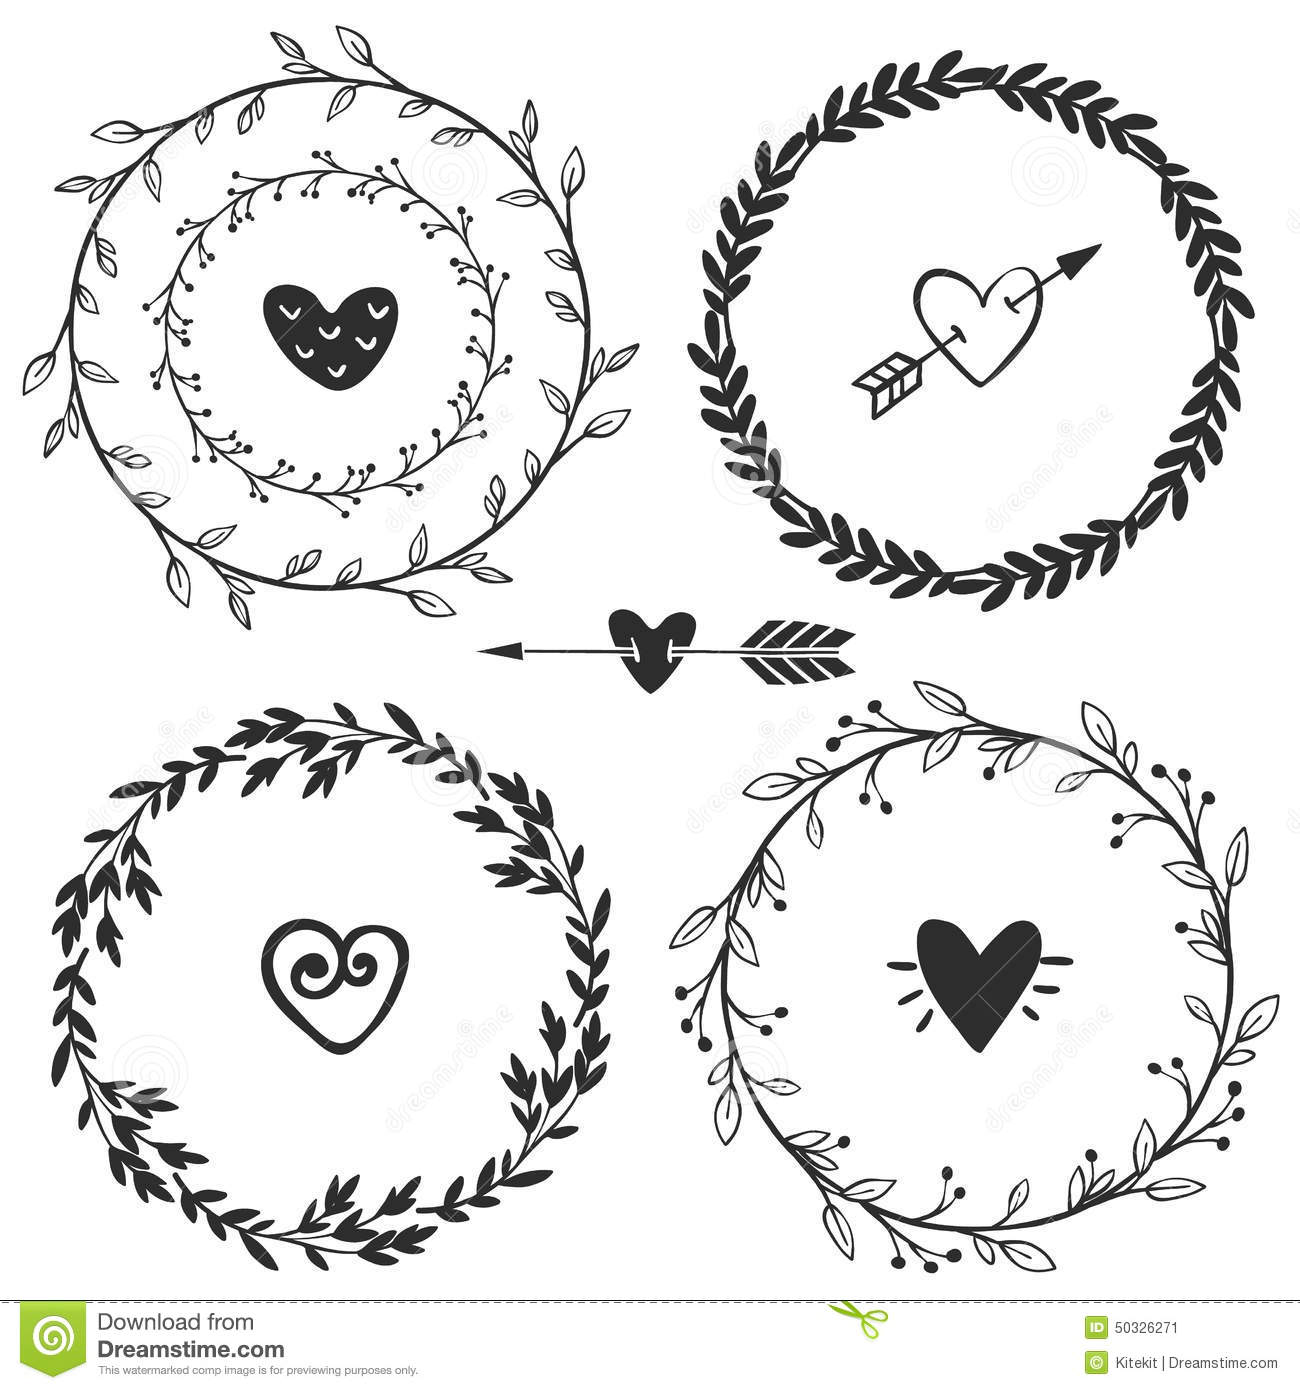 Hand Drawn Rustic Vintage Wreaths With Hearts Floral Vector Graphic Nature Design Elements